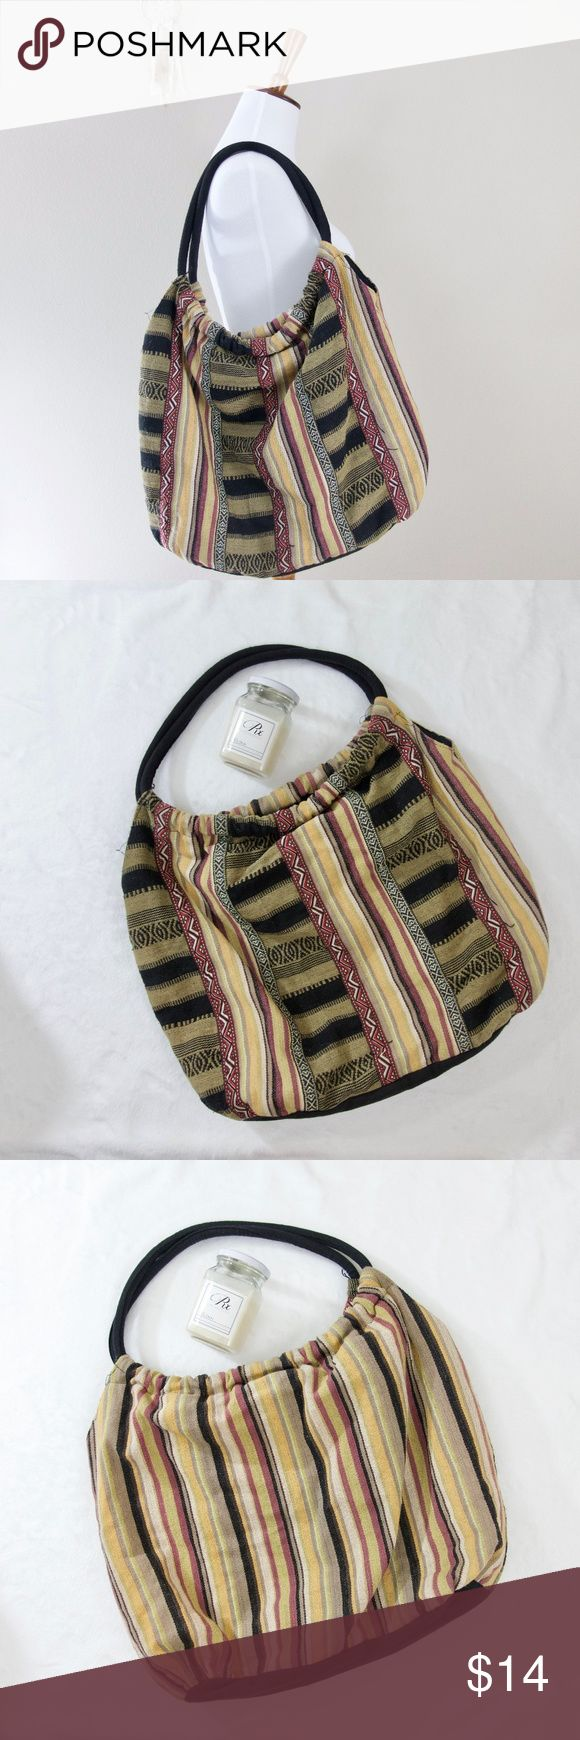 World Market Tribal Aztec Tote Shoulder Bag World Market Tribal Aztec Tote Shoulder Bag  * Preowned, used for class a few times * In great condition! Minor pilling on exterior, interior is clean * Has a button clasp on the top * 1 inner zippered pocket, 2 small inner pockets * Light weight material * Can be worn on either side! Bags Totes